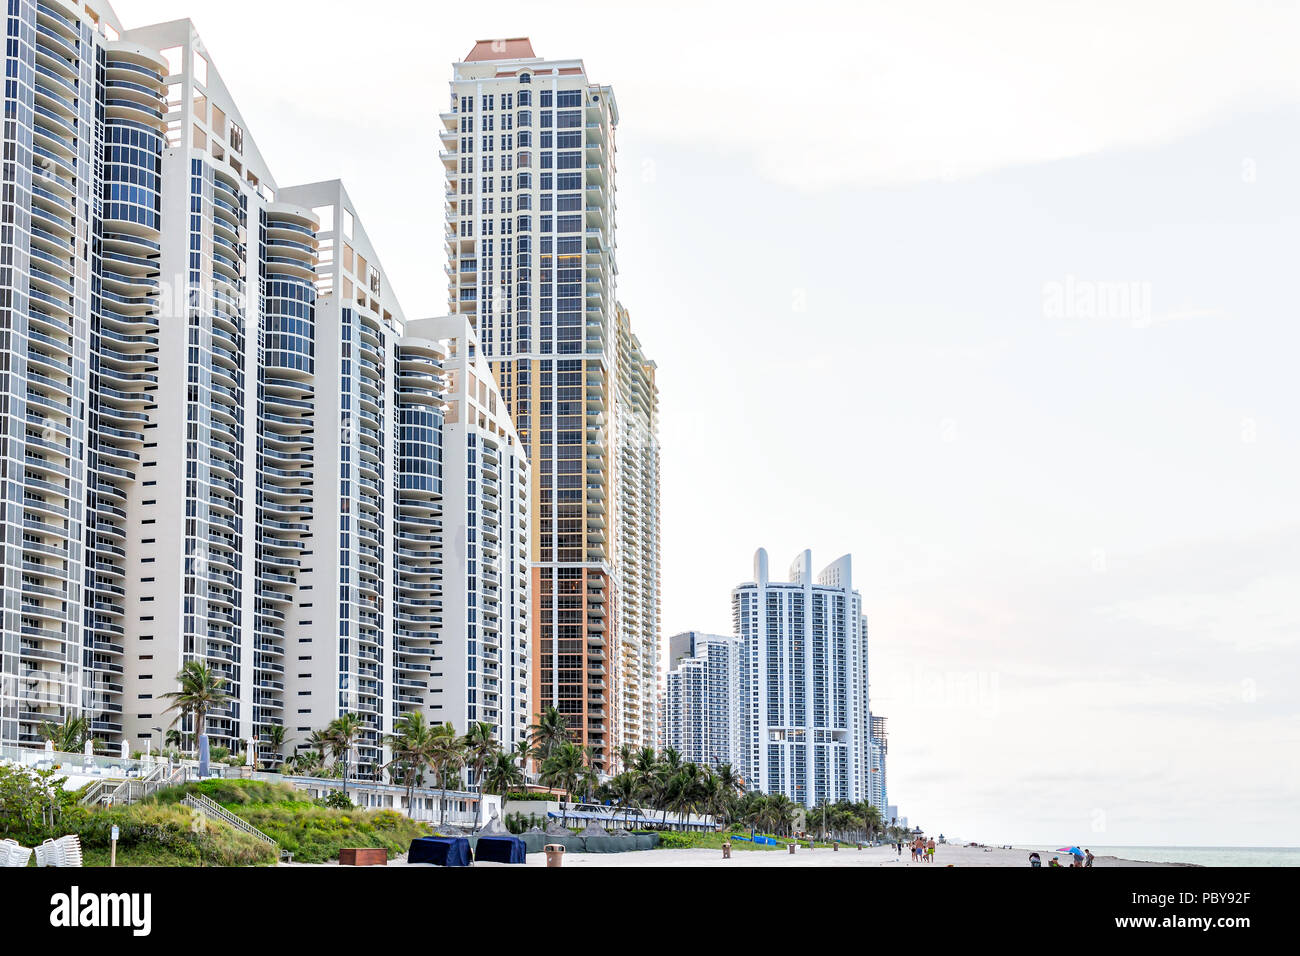 Sunny Isles Beach, USA - May 7, 2018: Apartment condo hotel Pinnacle building balconies during sunny day in Miami, Florida with skyscrapers urban exte - Stock Image